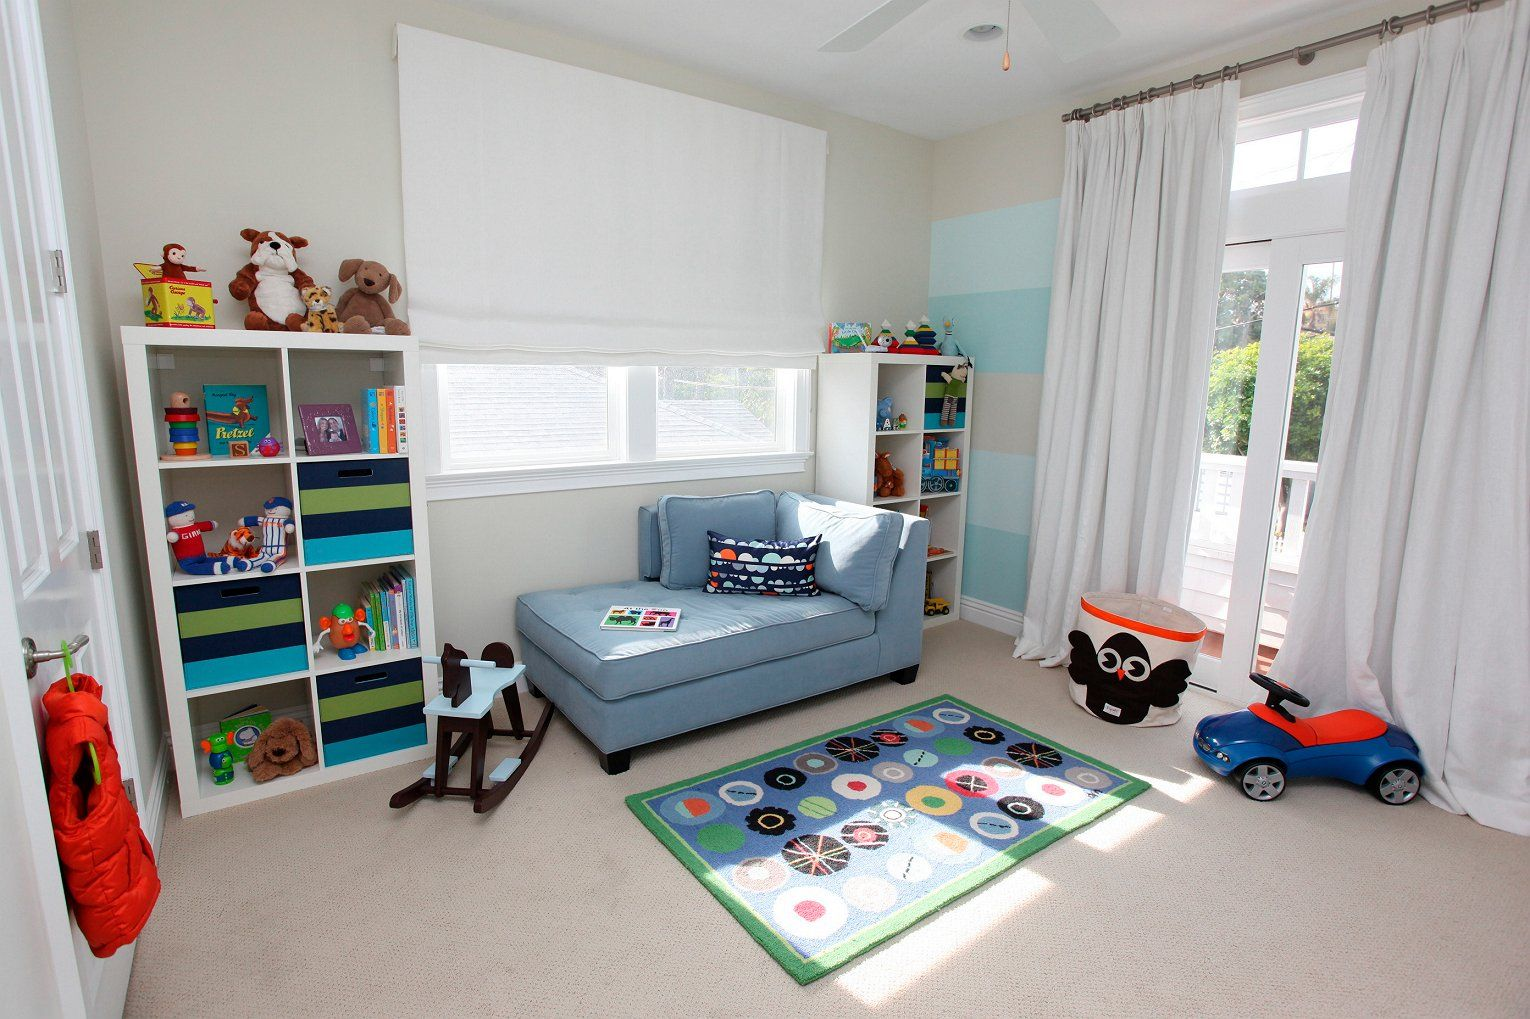 It 39 s alive a transitional toddler room - Bedroom ideas for 3 year old boy ...